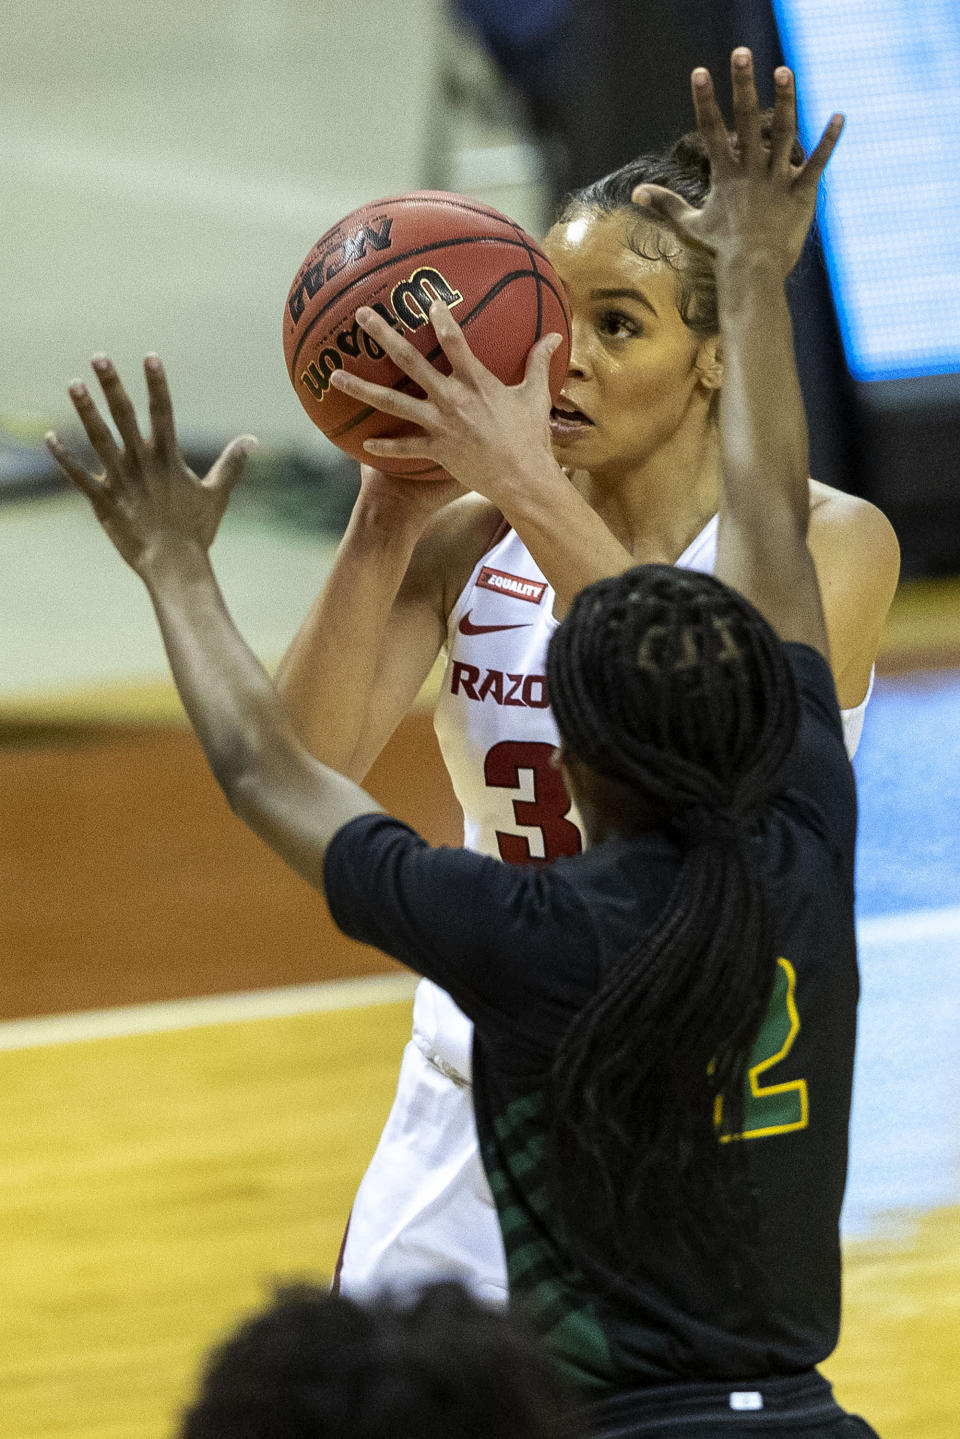 Arkansas guard Chelsea Dungee, left, shoots over Wright State guard Destyne Jackson during the first half of a college basketball game in the first round of the women's NCAA tournament at the Frank Erwin Center in Austin, Texas, Monday, March 22, 2021. (AP Photo/Stephen Spillman)